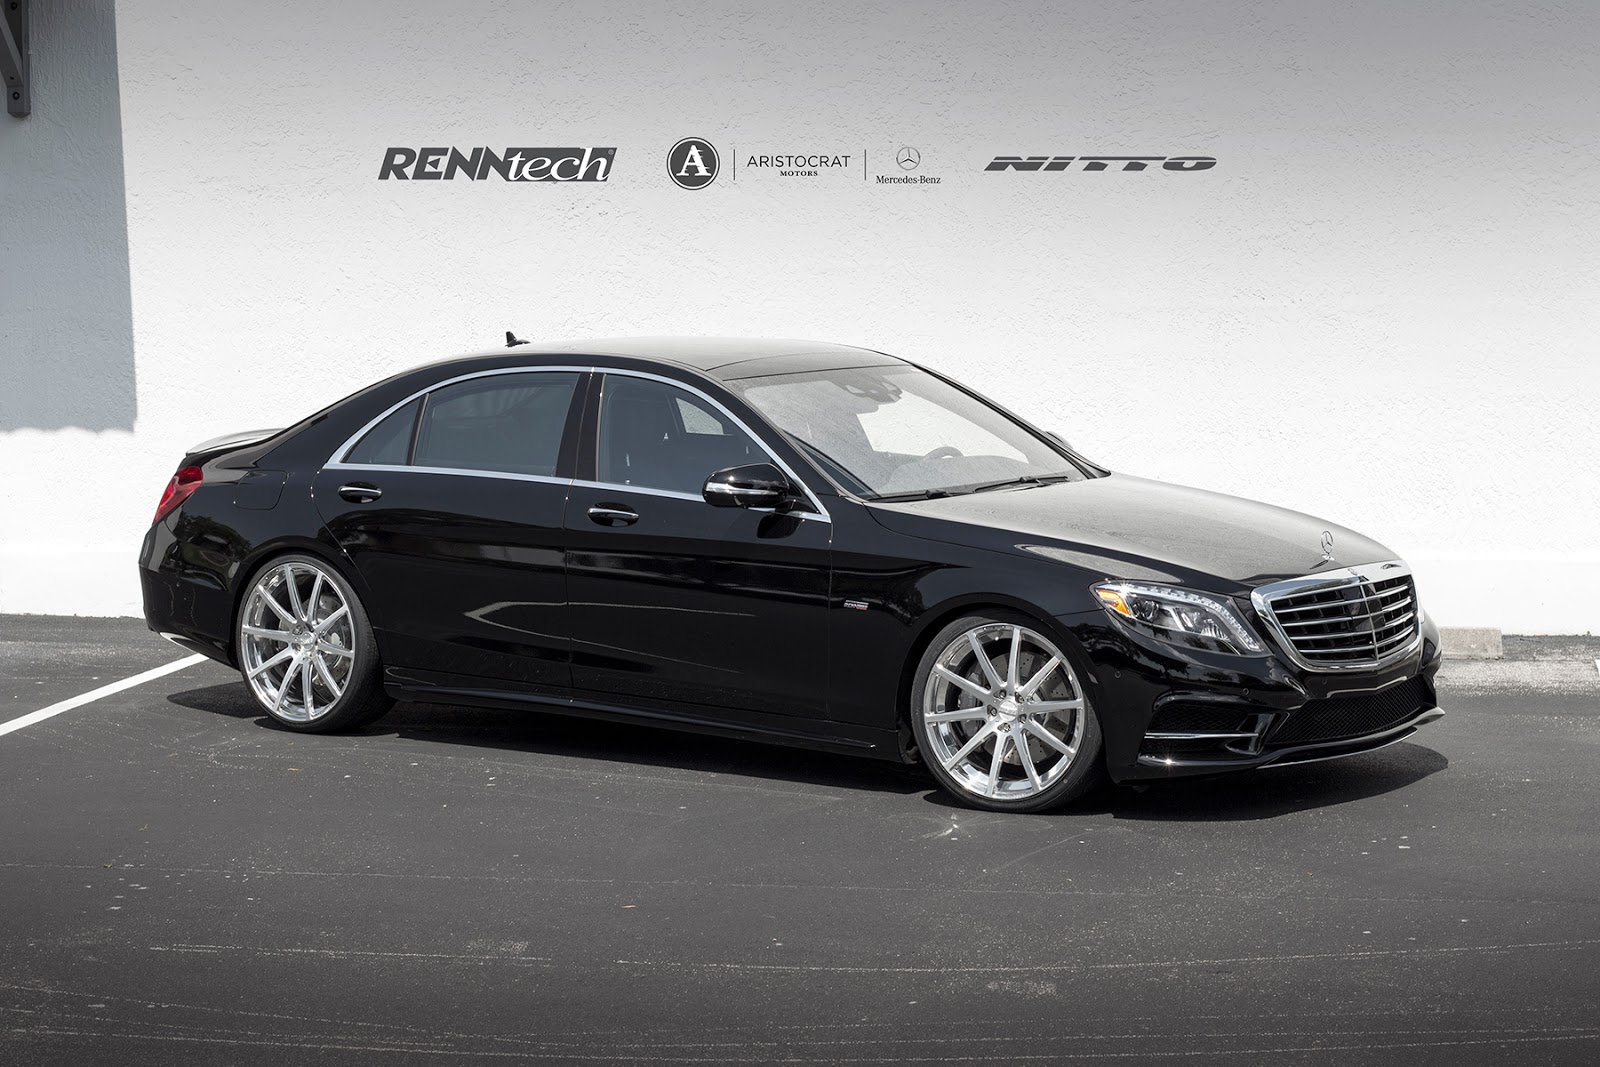 Renntech news mercedes benz s 550 renntech for Aristocrat motors mercedes benz